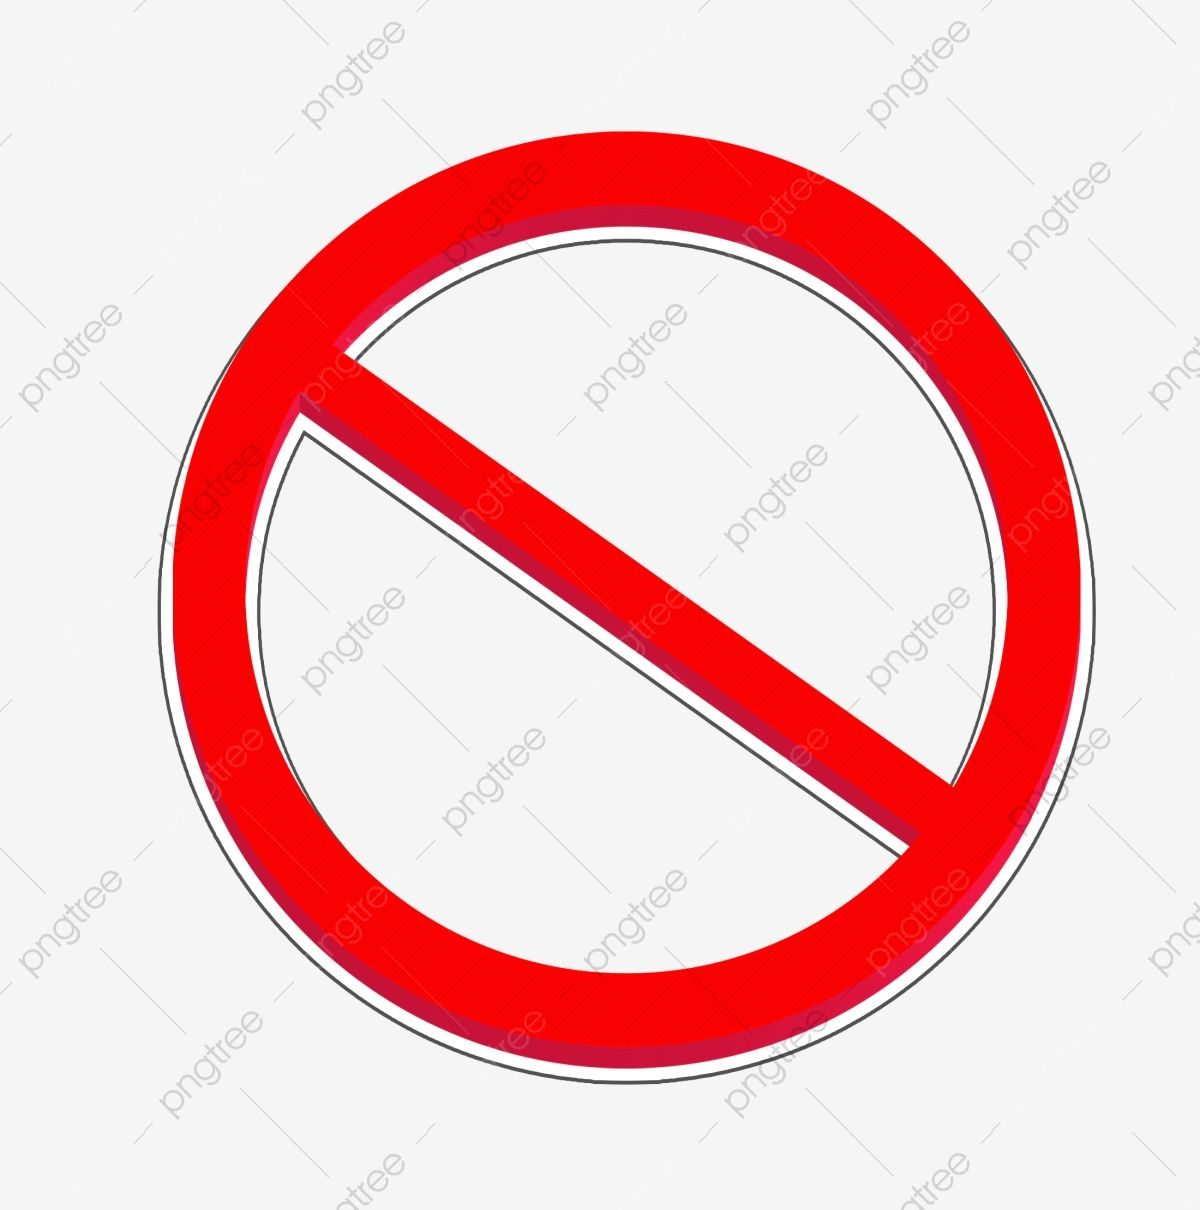 Forbidden Red Logo Design Logo Banned Red Flag Png Transparent Clipart Image And Psd File For Free Download Red Logo Design Logo Design Logo Design Free